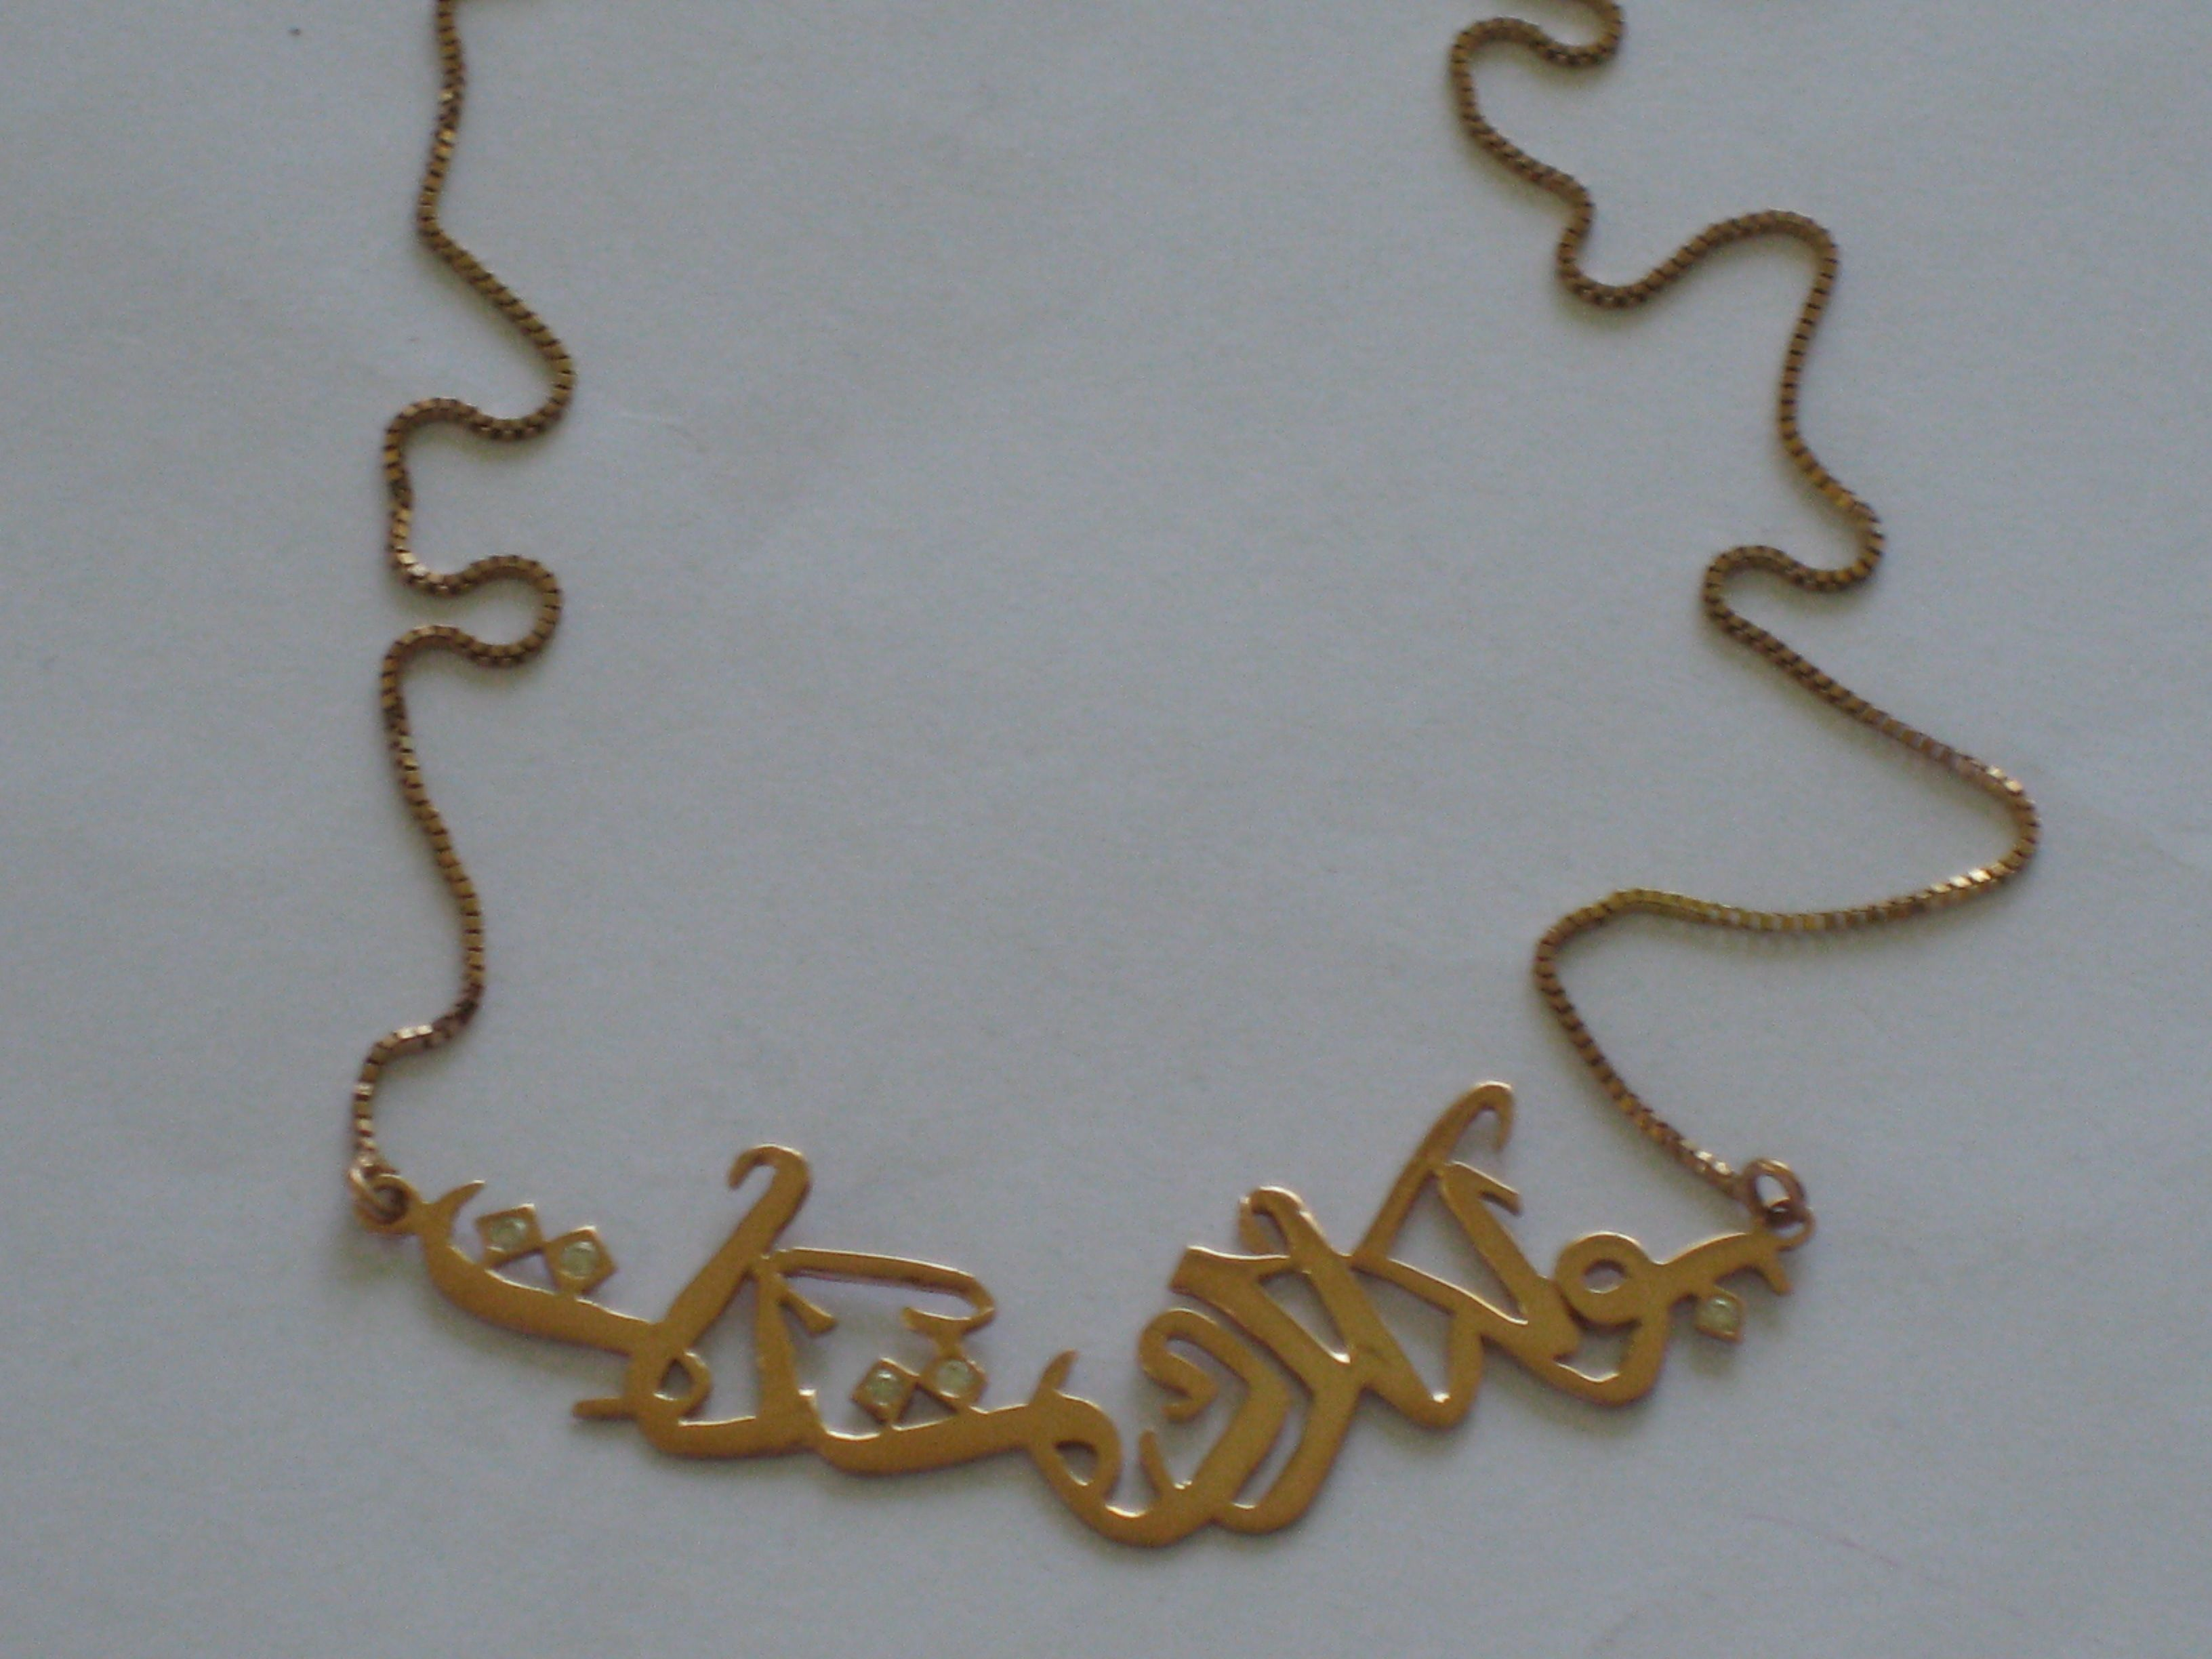 name chains lou necklace gifts minute last collections jewellery anna london of emily